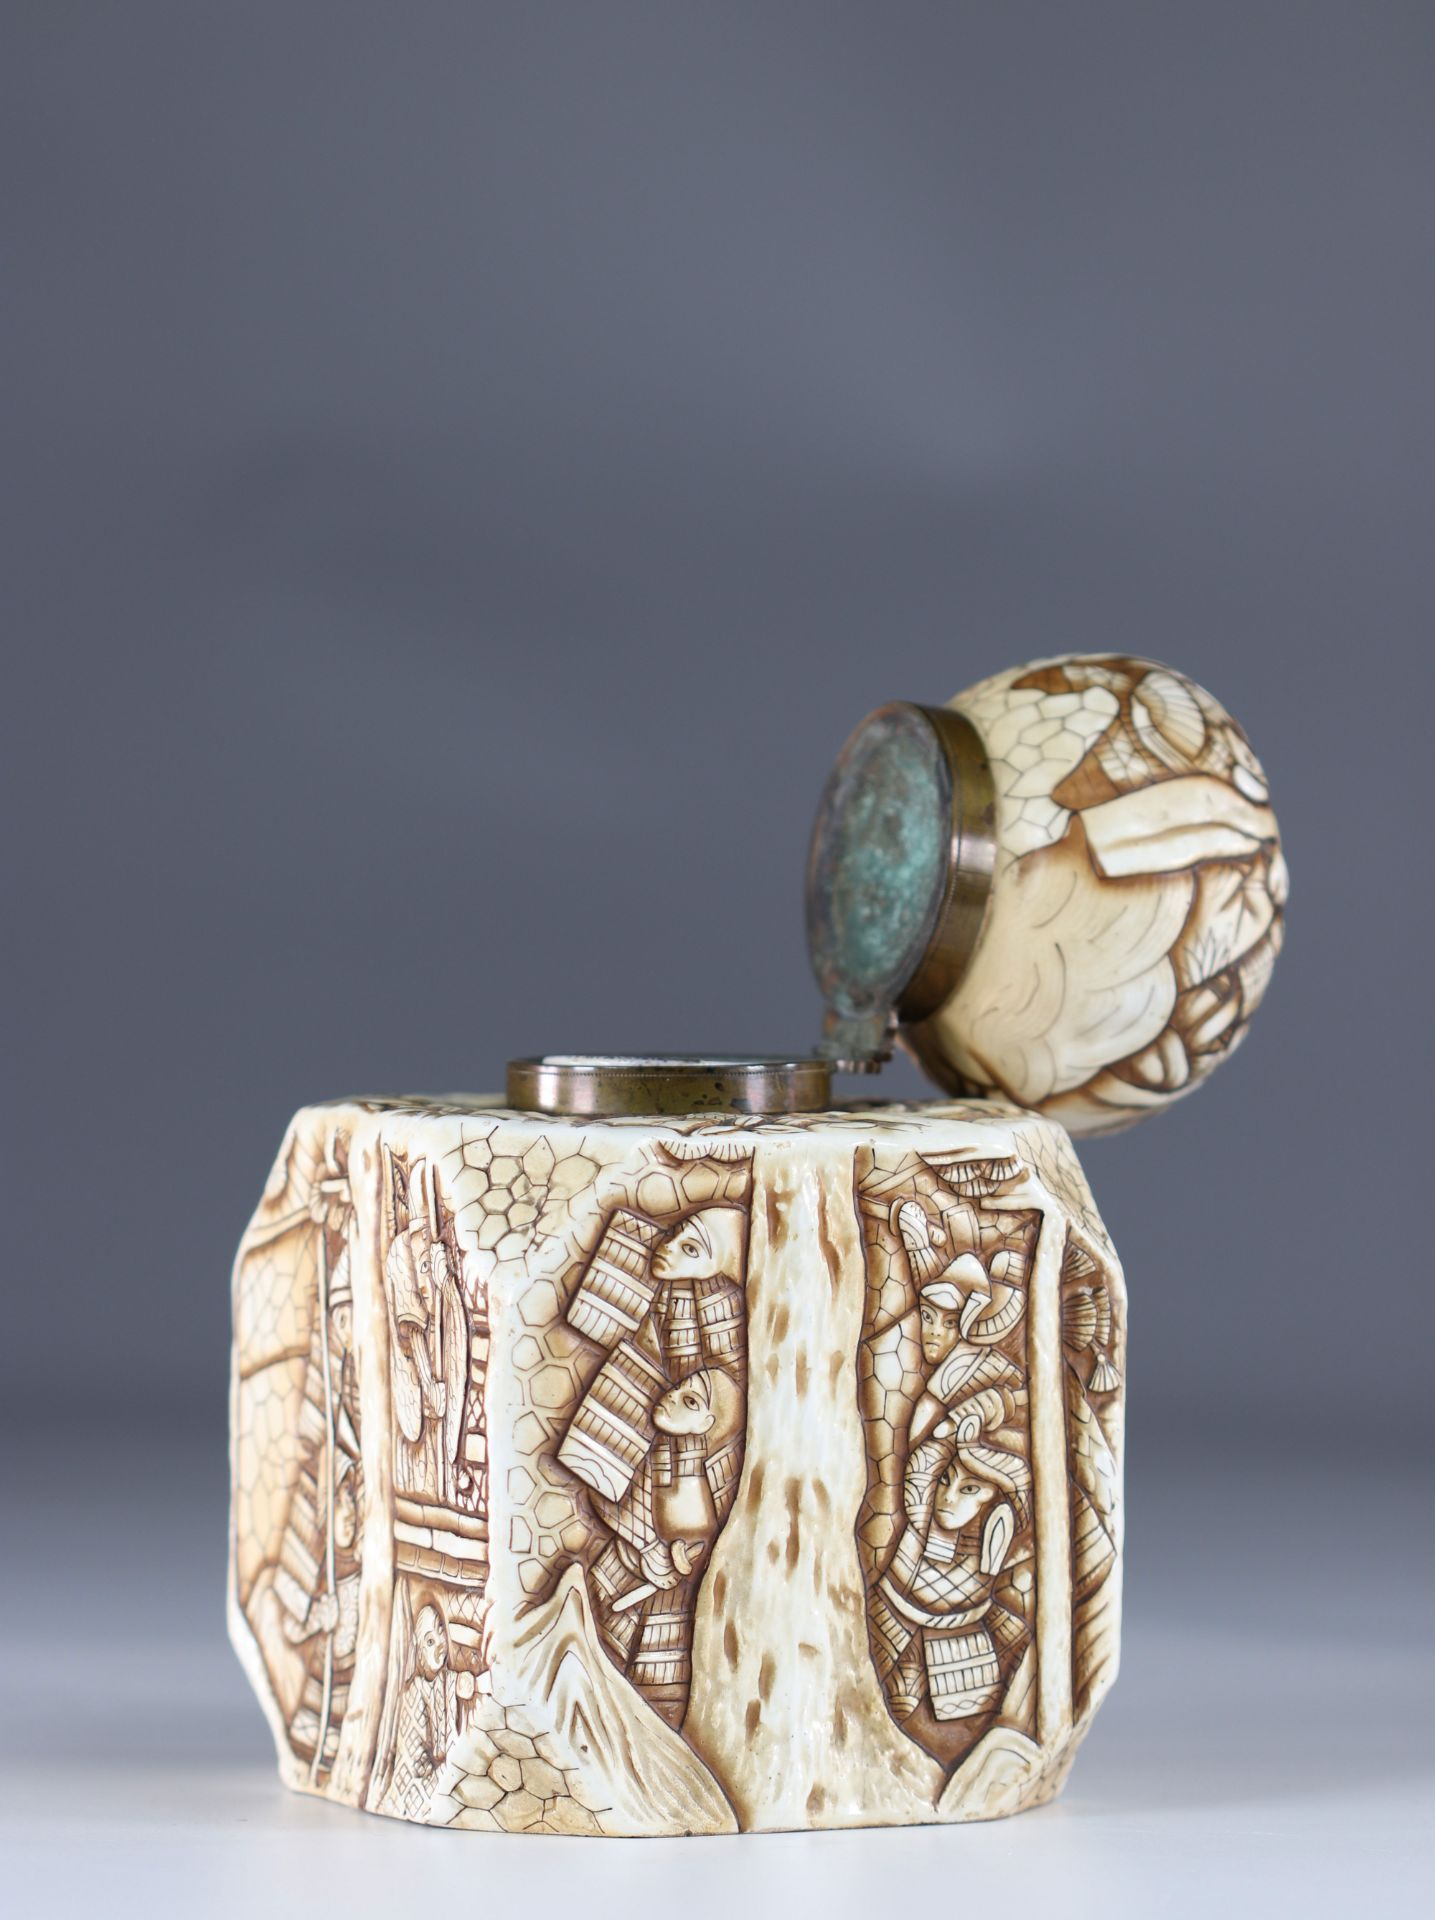 Japanese Art Deco porcelain inkwell decorated with warriors - Image 5 of 6